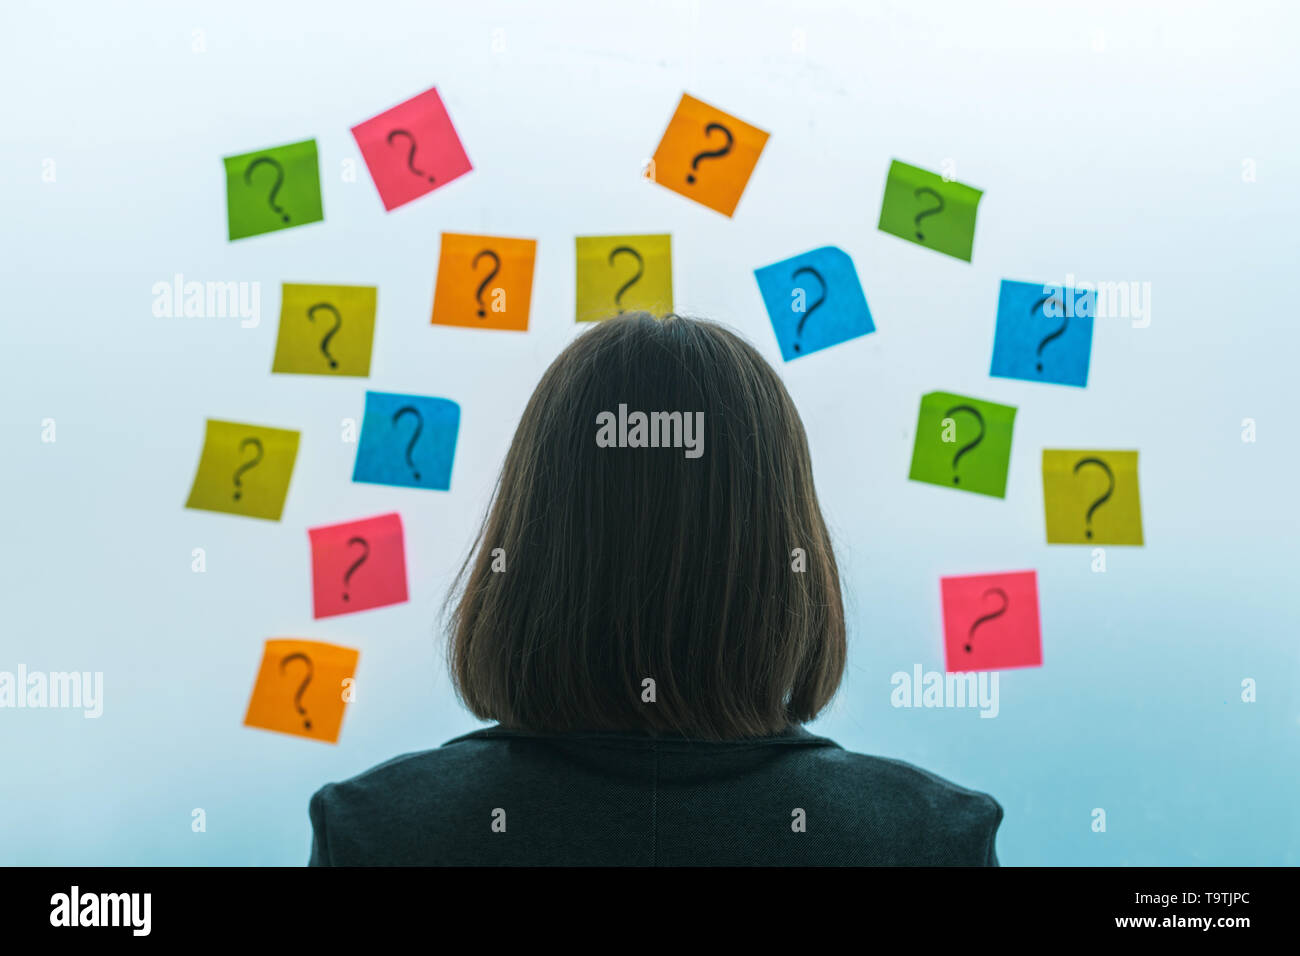 Businesswoman facing questions and challenges in business situation, rear view of female business person looking at question marks written on colorful - Stock Image